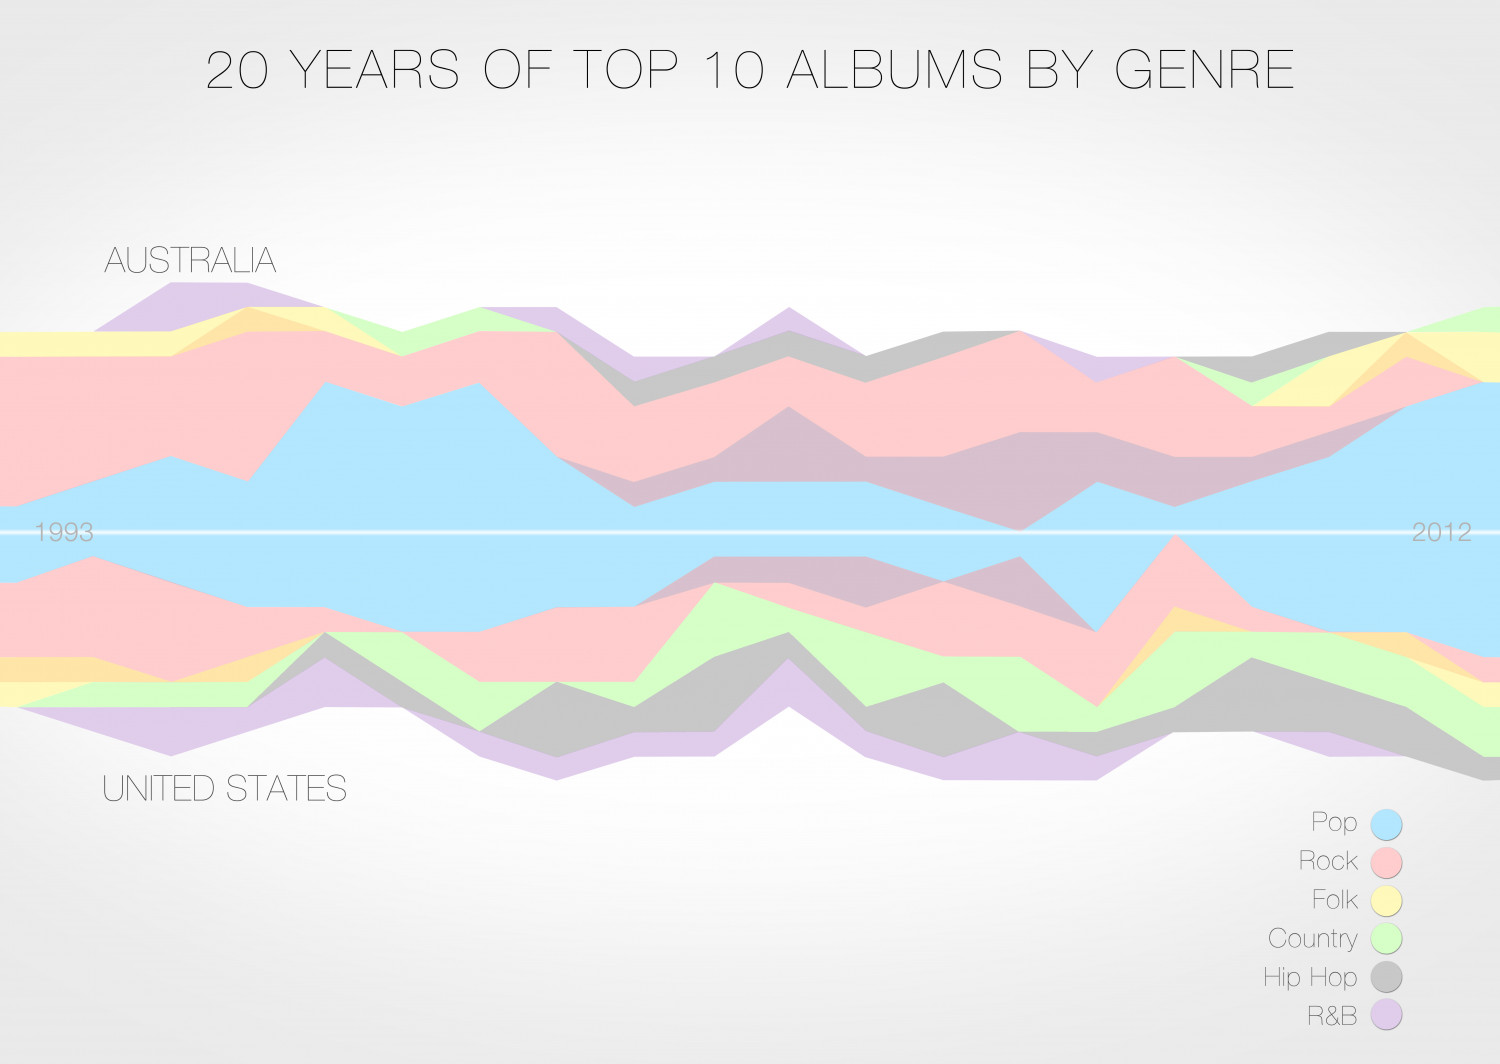 AUS vs USA: 20 Years of Top 10 Albums by Genre Infographic